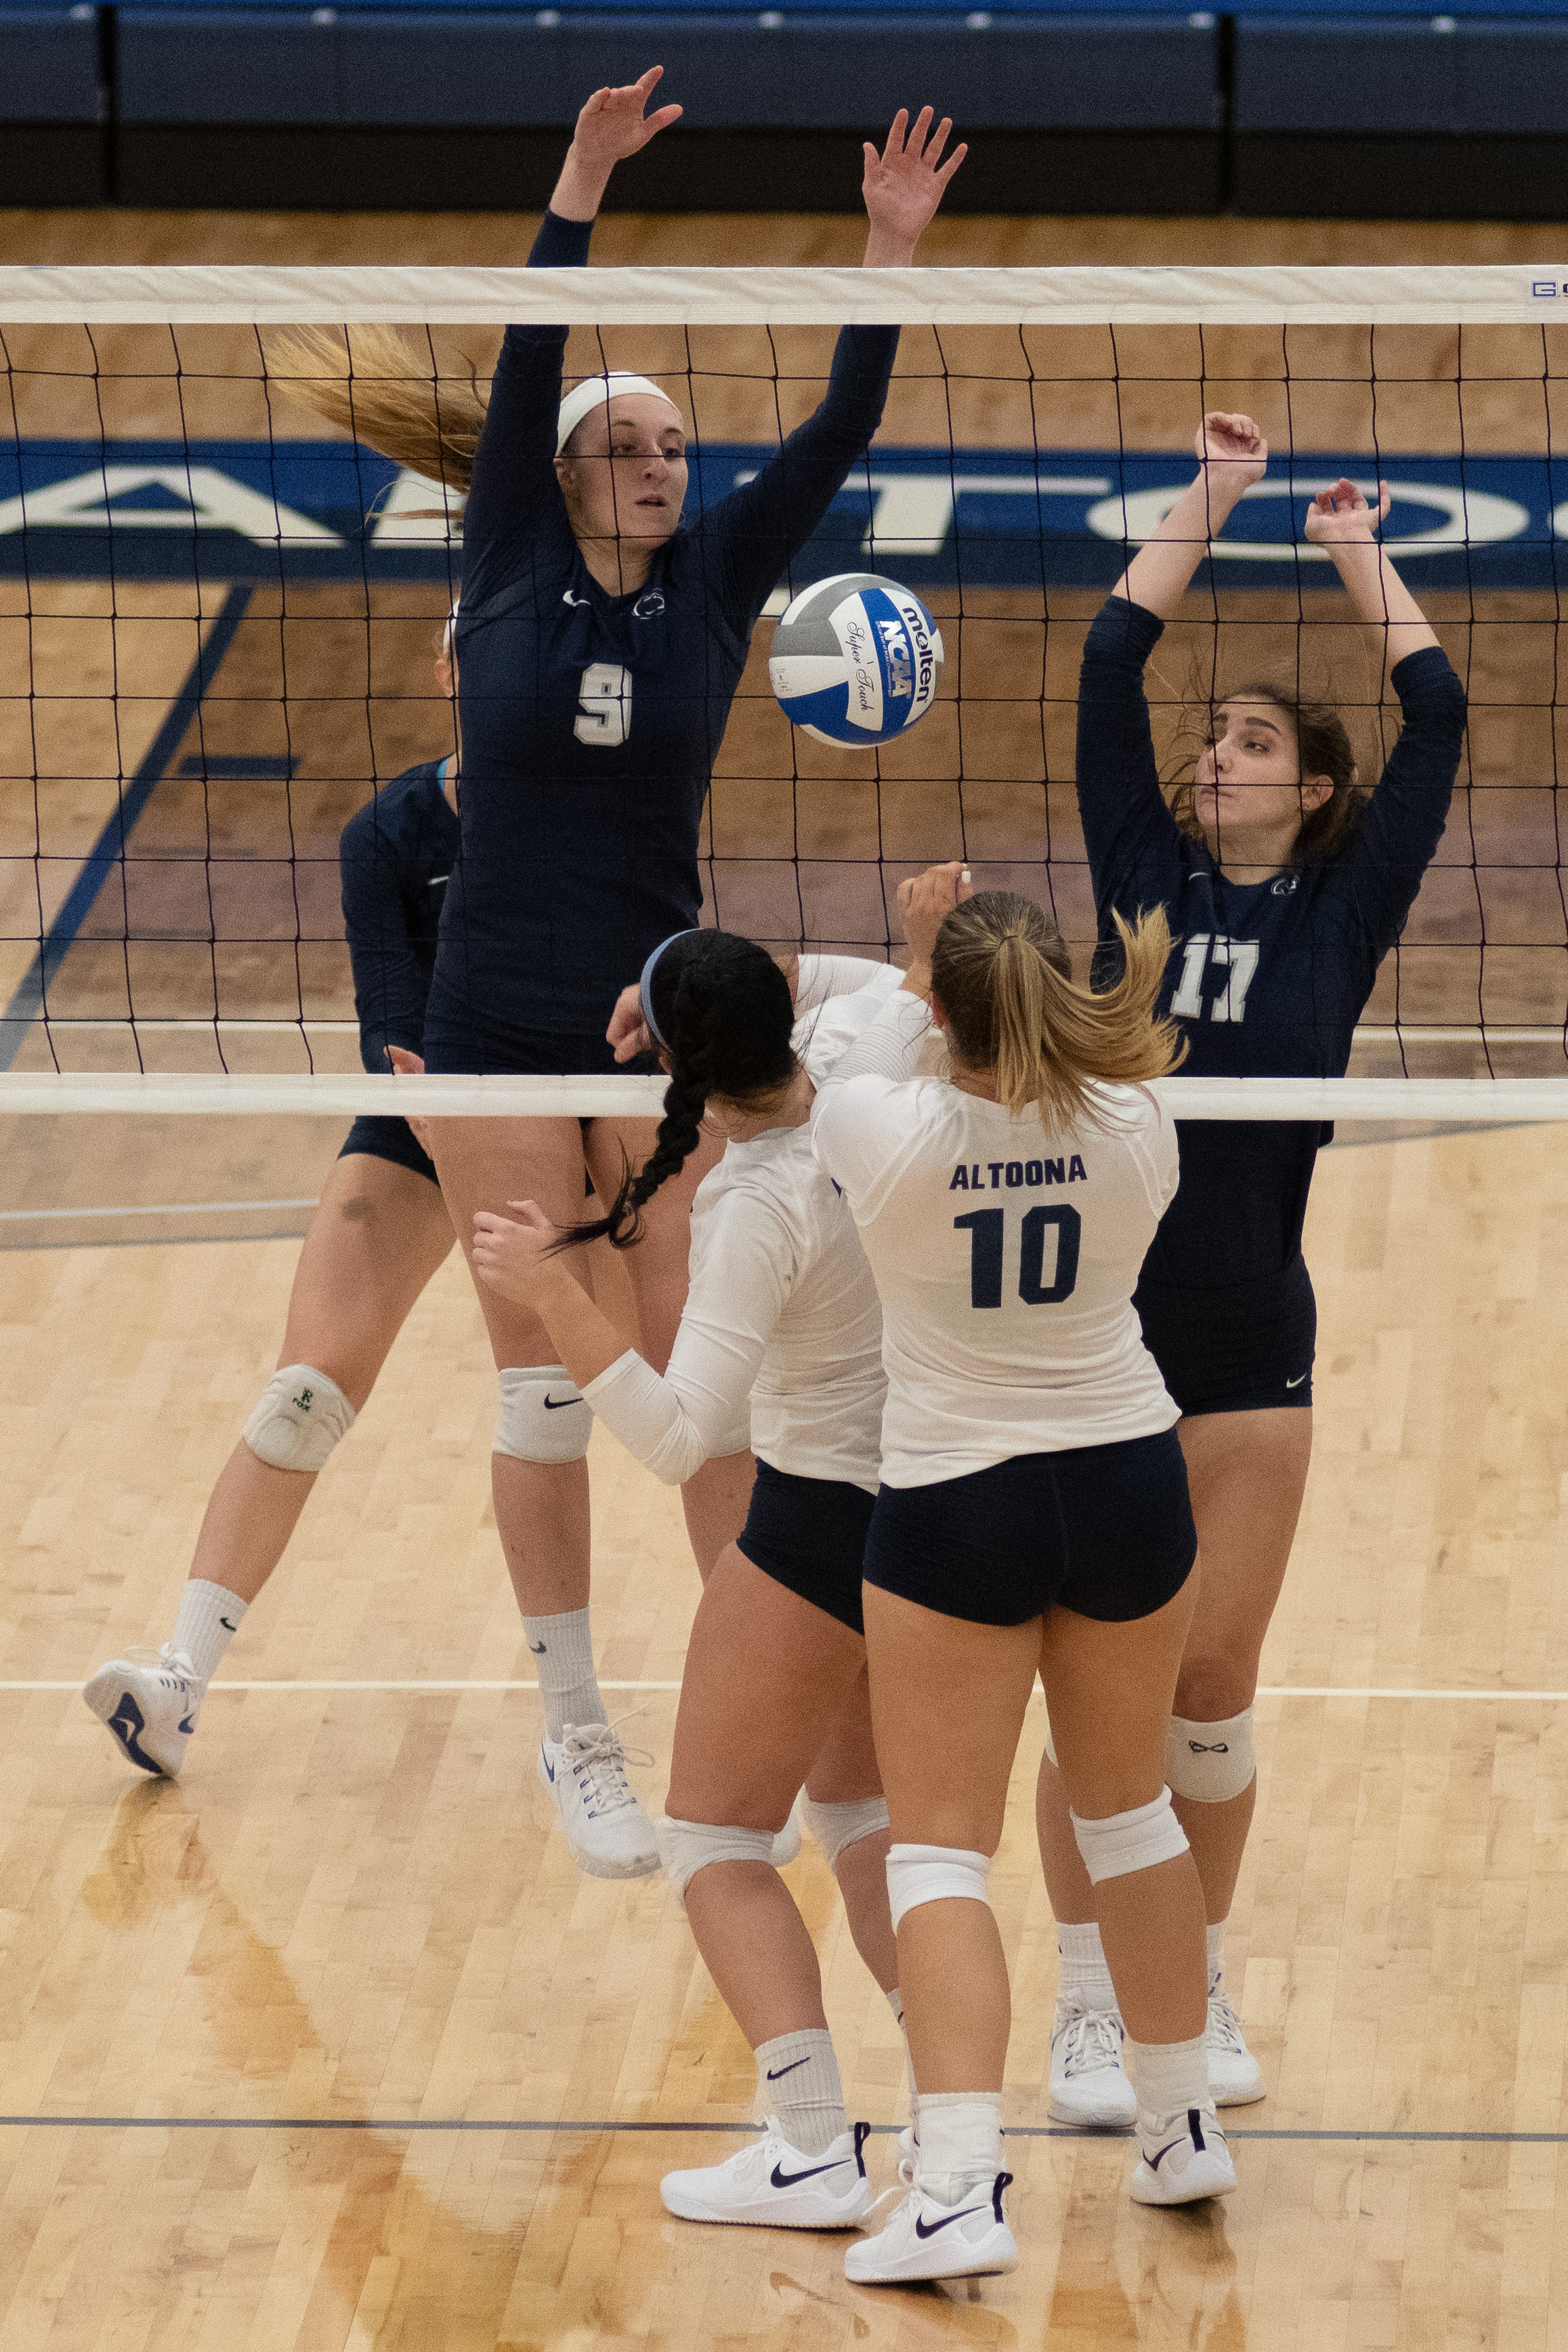 Penn State Harrisburg Women's Volleyball players Brittany Wolf (#9) and Erin Smallwood (#17) block the ball into Penn State Altoona players Paige Burk (#4) and Kelsey Bristol (#10) in their 3-0 win against Penn State Altoona.